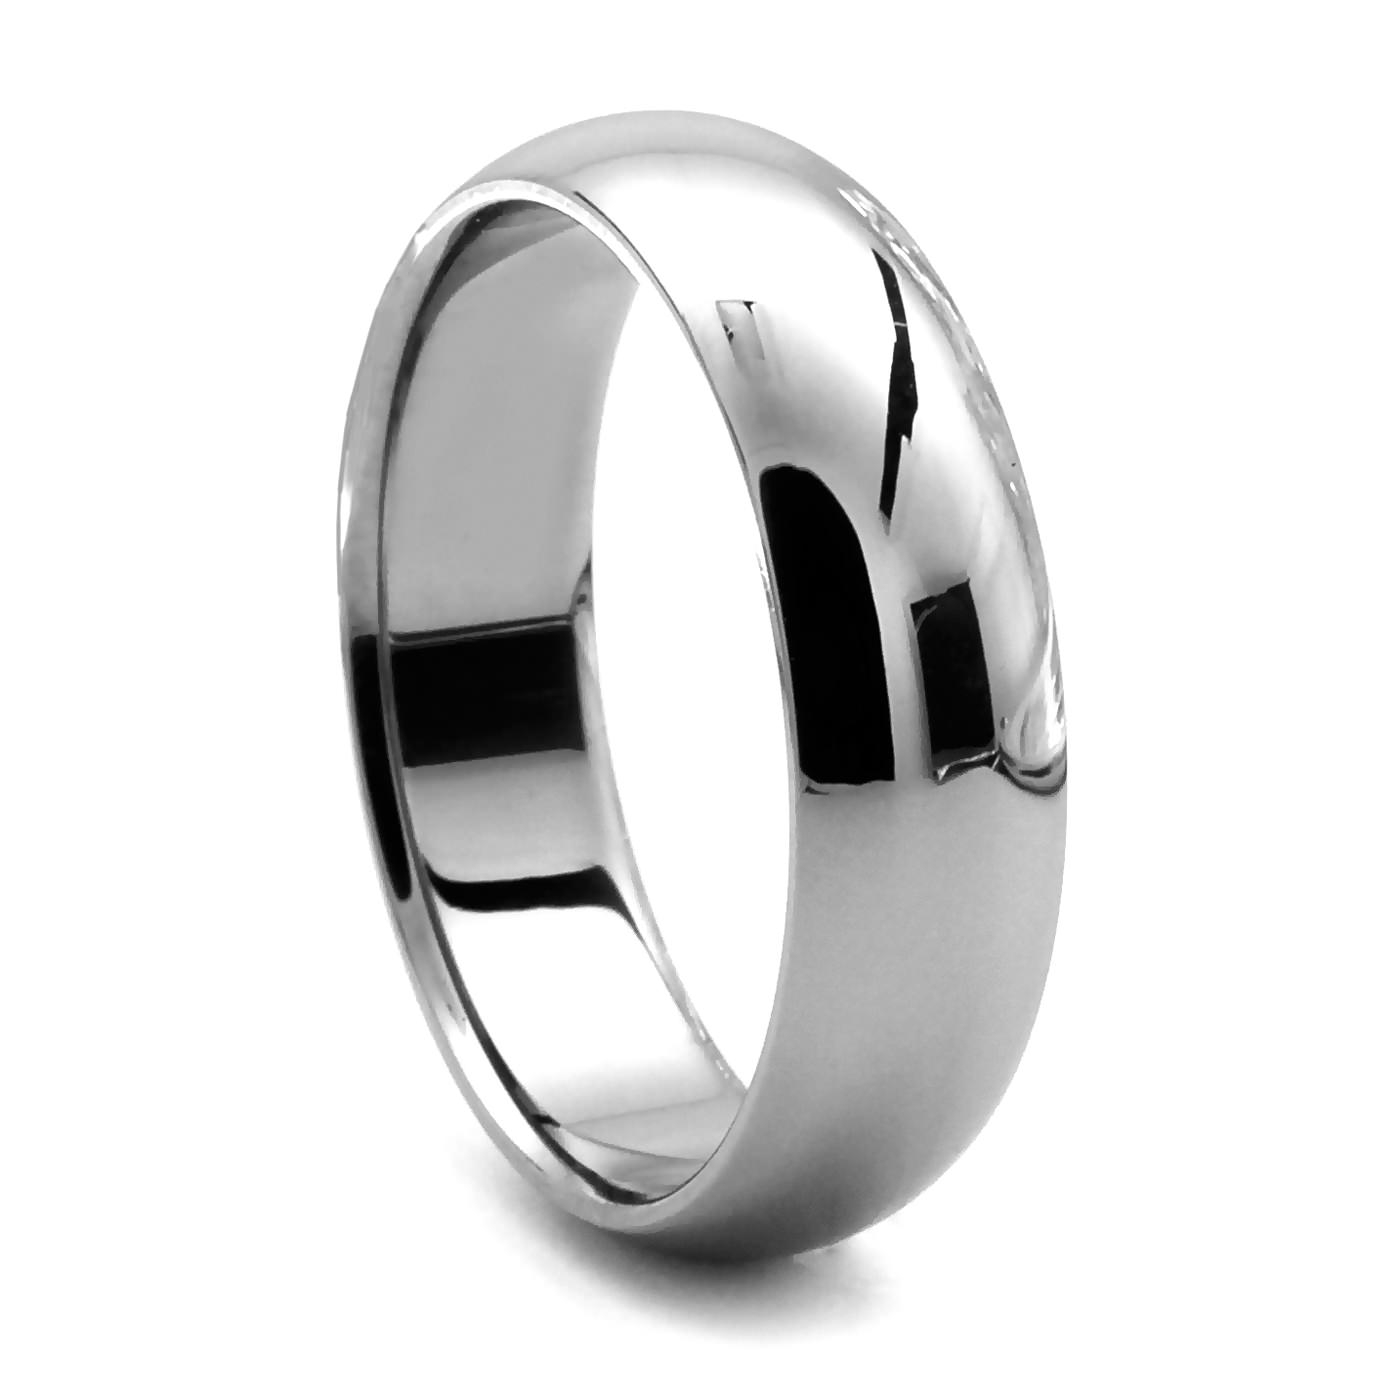 J.r. Yates Classico Comfort Fit Tungsten Wedding Band Pertaining To Tungsten Wedding Bands (Gallery 259 of 339)